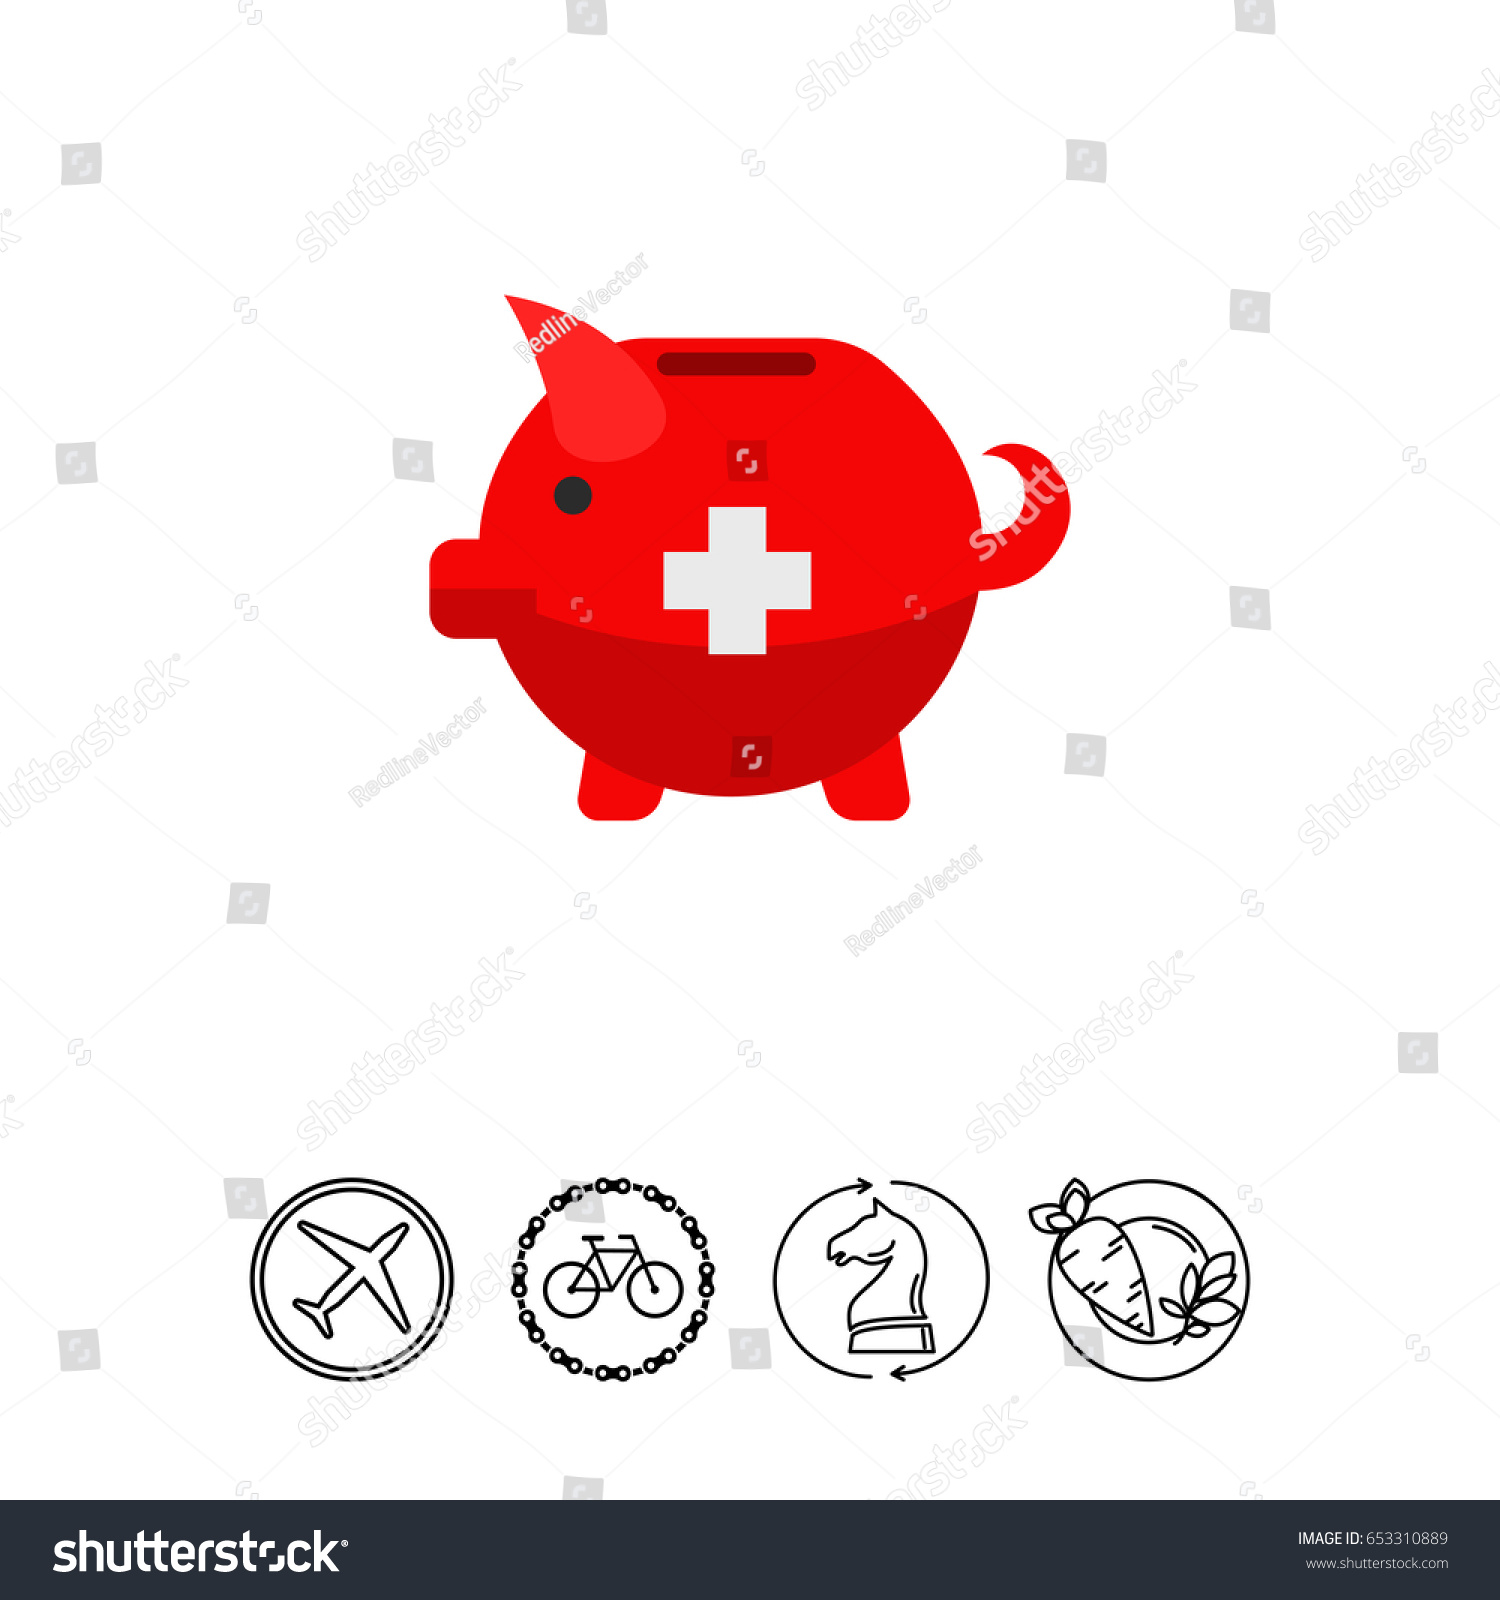 Swiss piggy bank vector icon stock vector 653310889 shutterstock swiss piggy bank vector icon buycottarizona Image collections